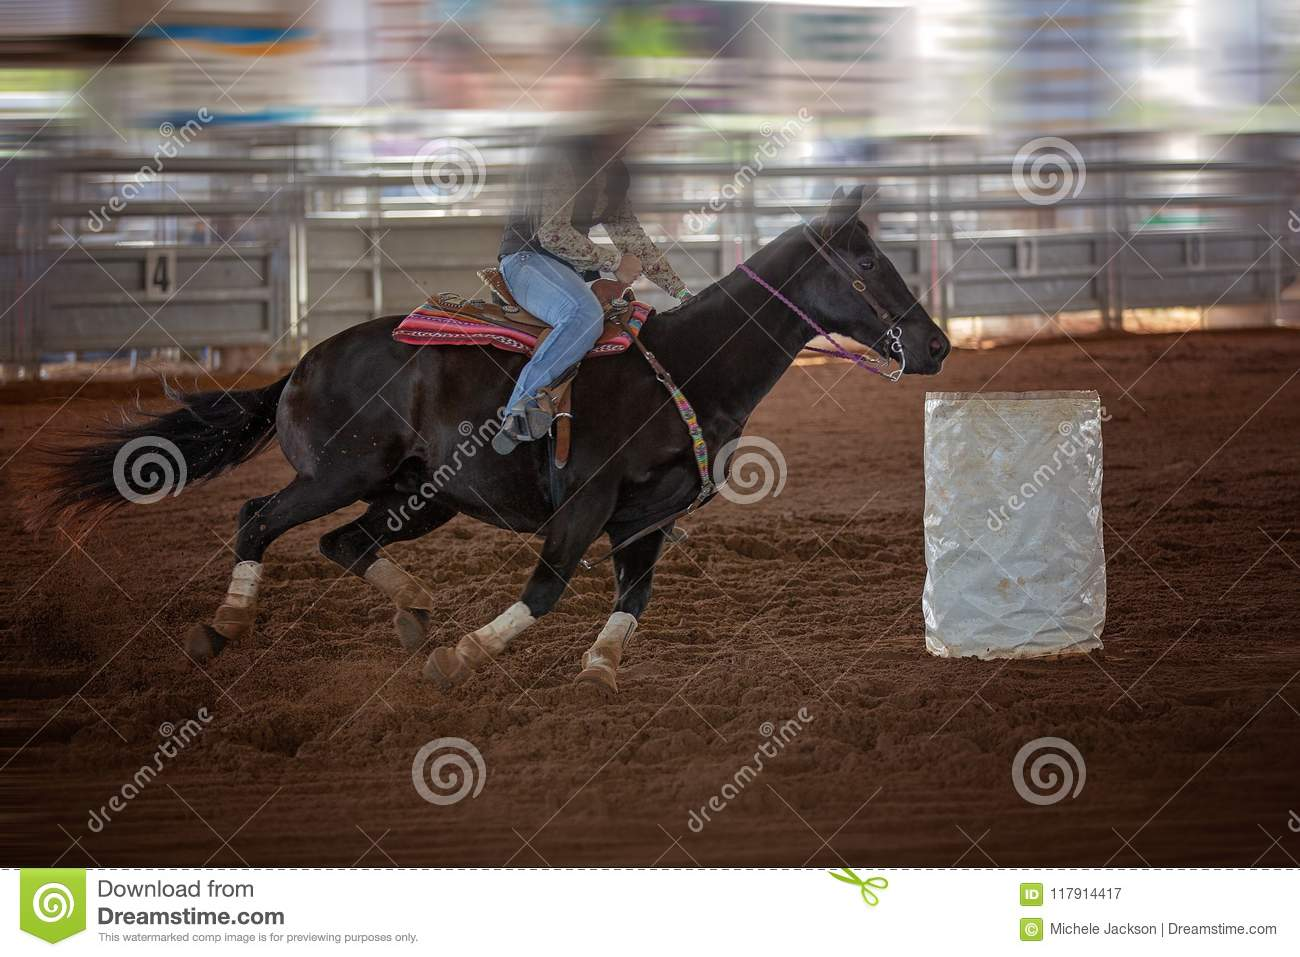 Cowgirl Rides Horse At Speed In Rodeo Barrel Racing Competition